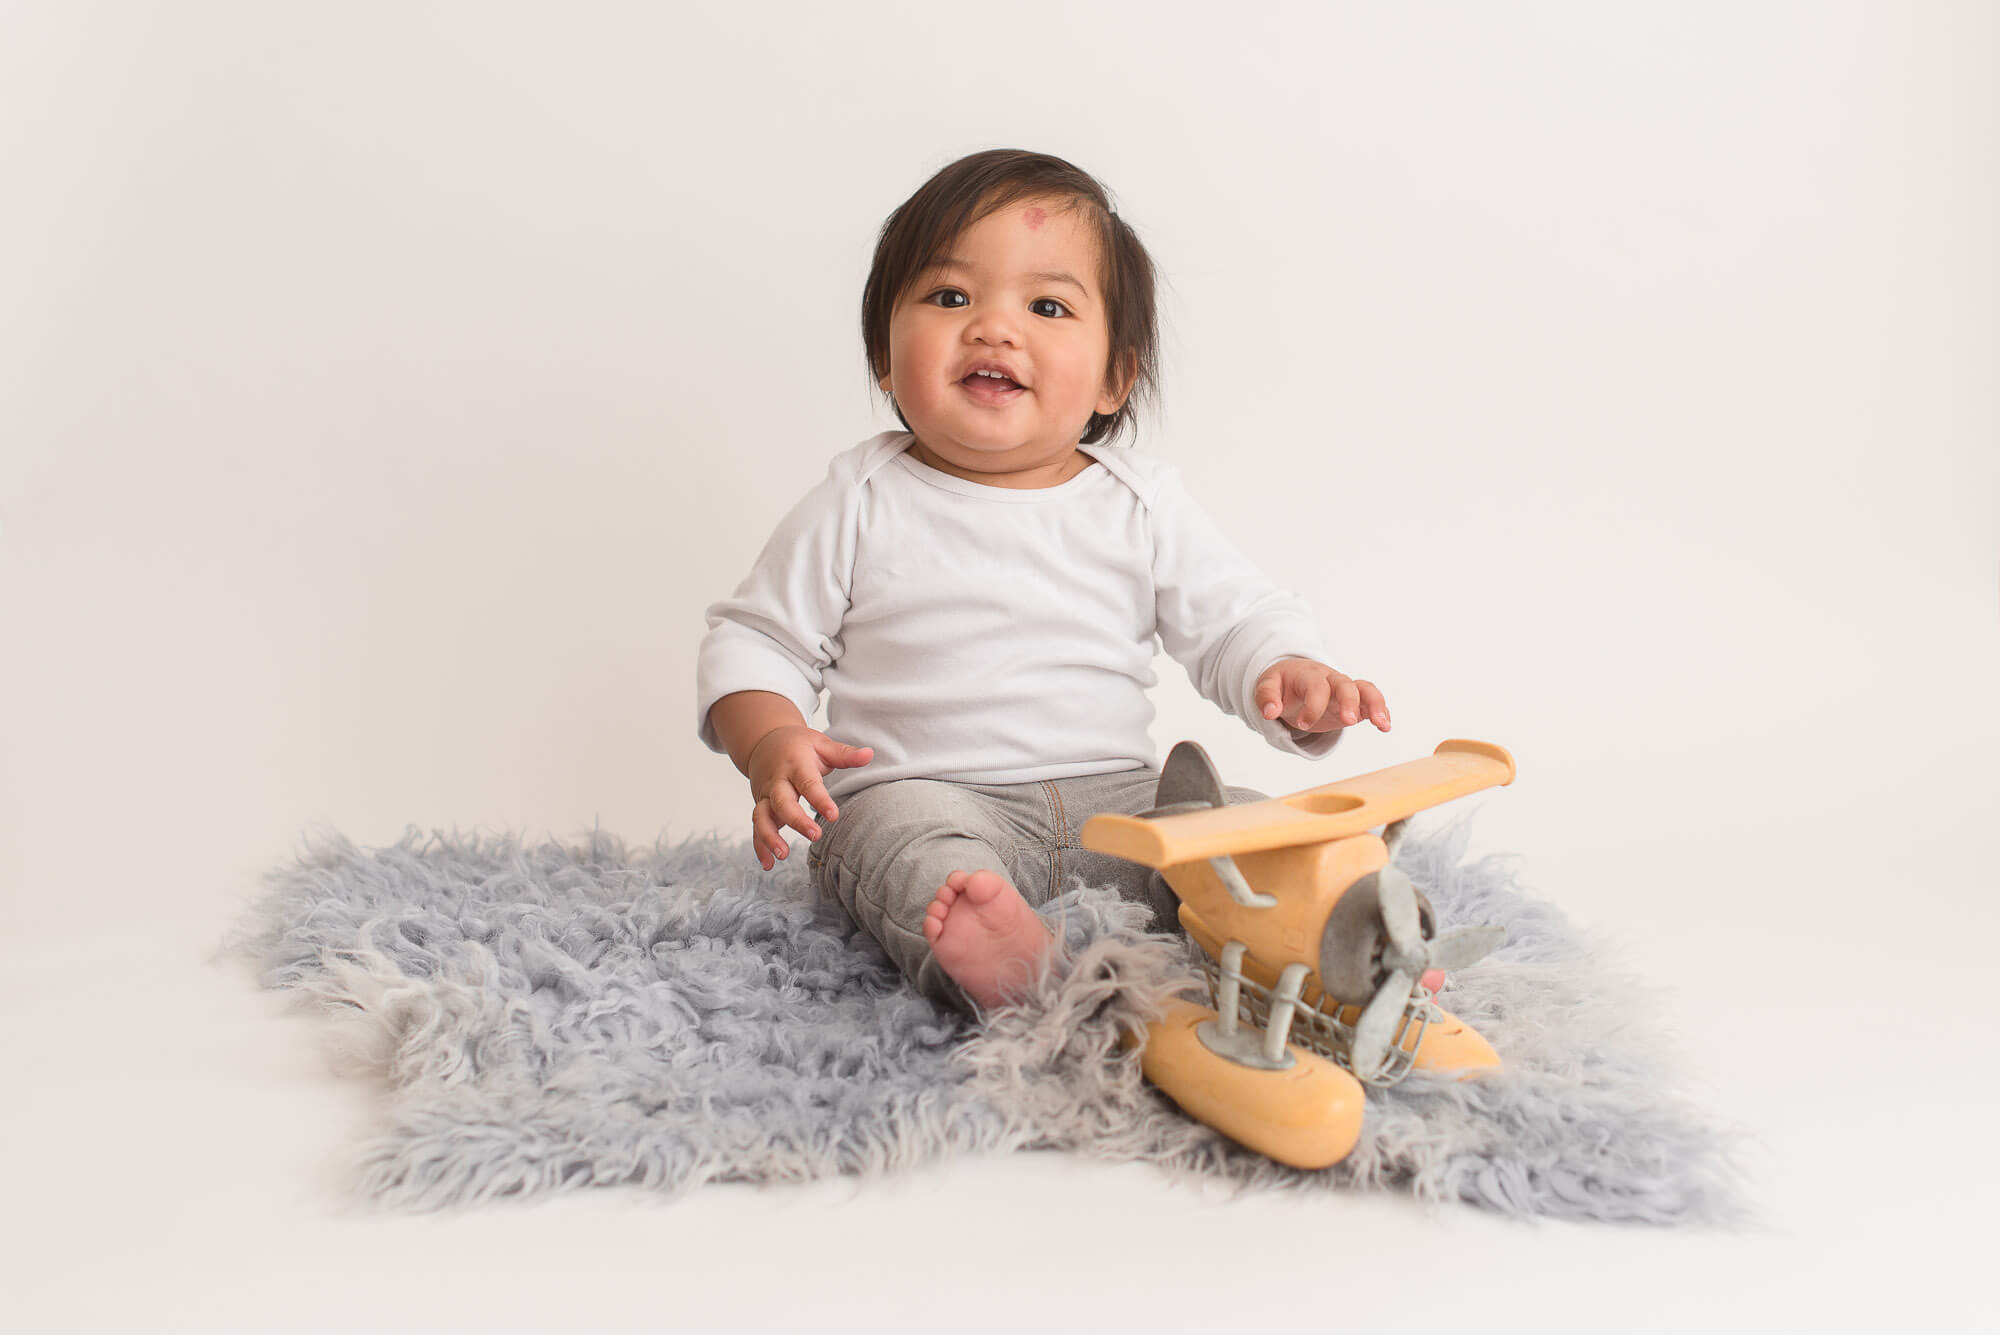 classic and timeless child portrait on fluffy rug with toy airplane